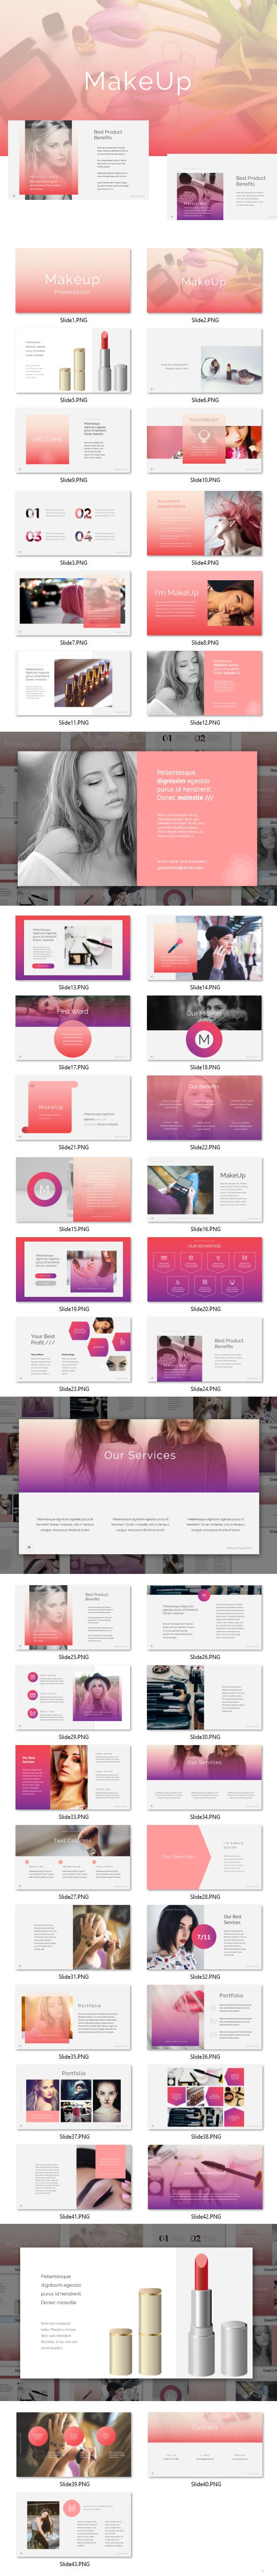 Makeup - PowerPoint Template